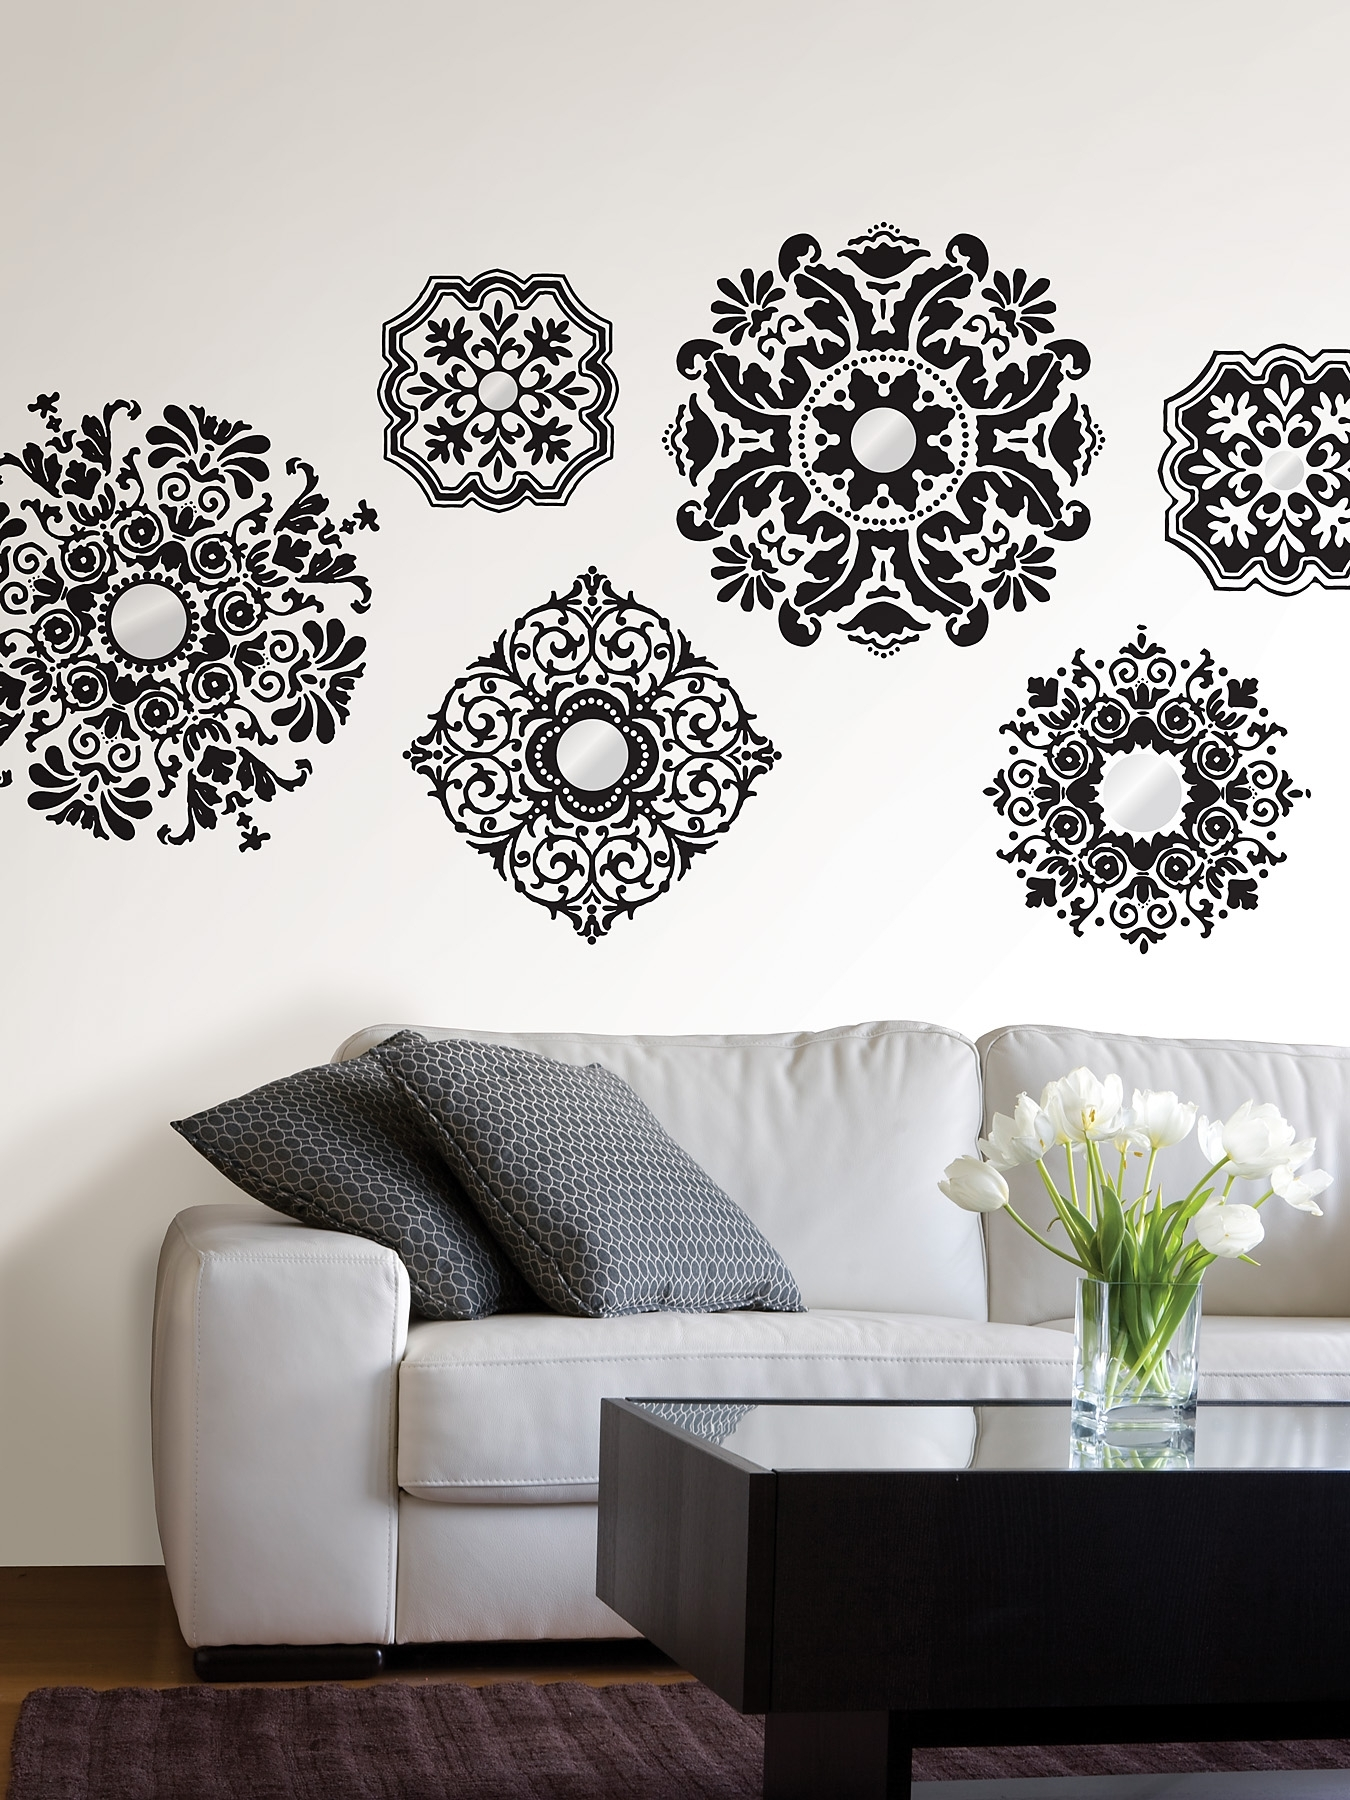 15+ Nice Black And White Wall Decor Ideas - Homeideasblog with Black Wall Art (Image 1 of 20)